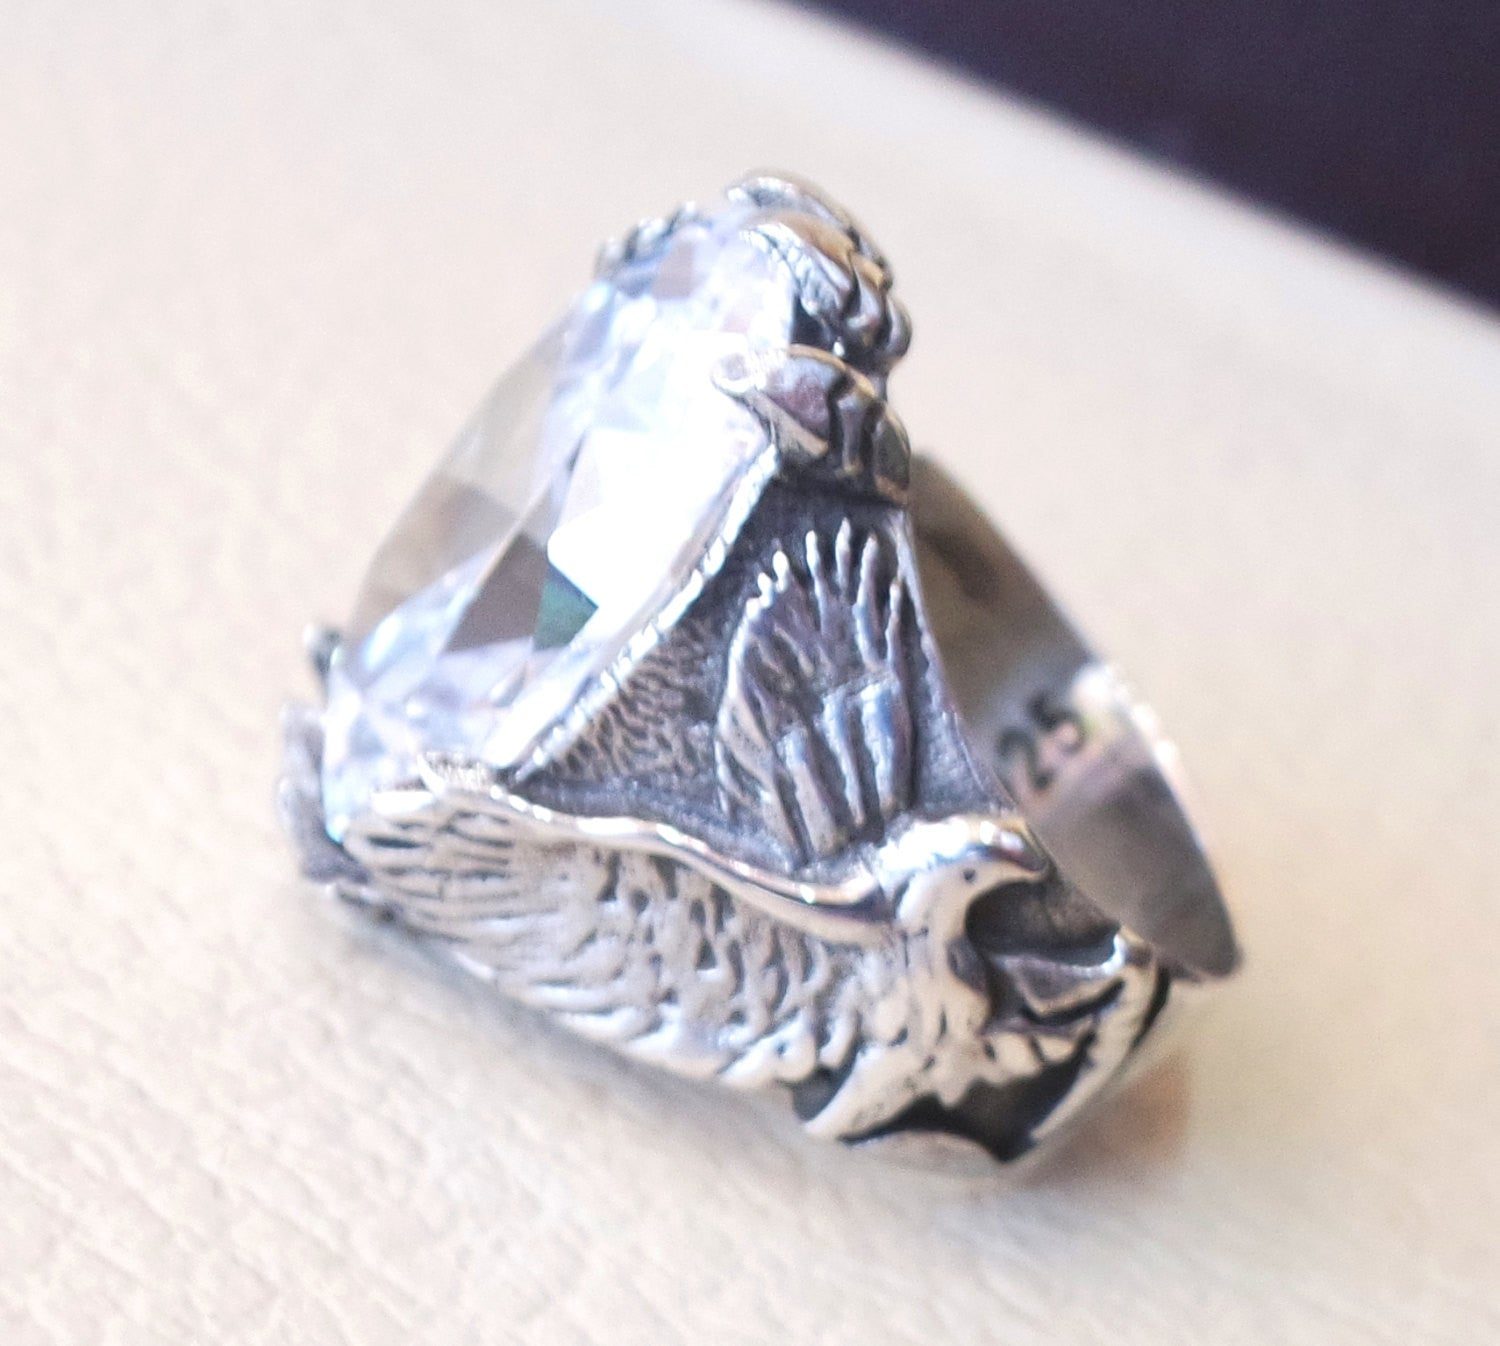 diamond synthetic stone high quality white color cubic zircon huge men ring eagle sterling silver 925 any size animal jewelry fast shipping